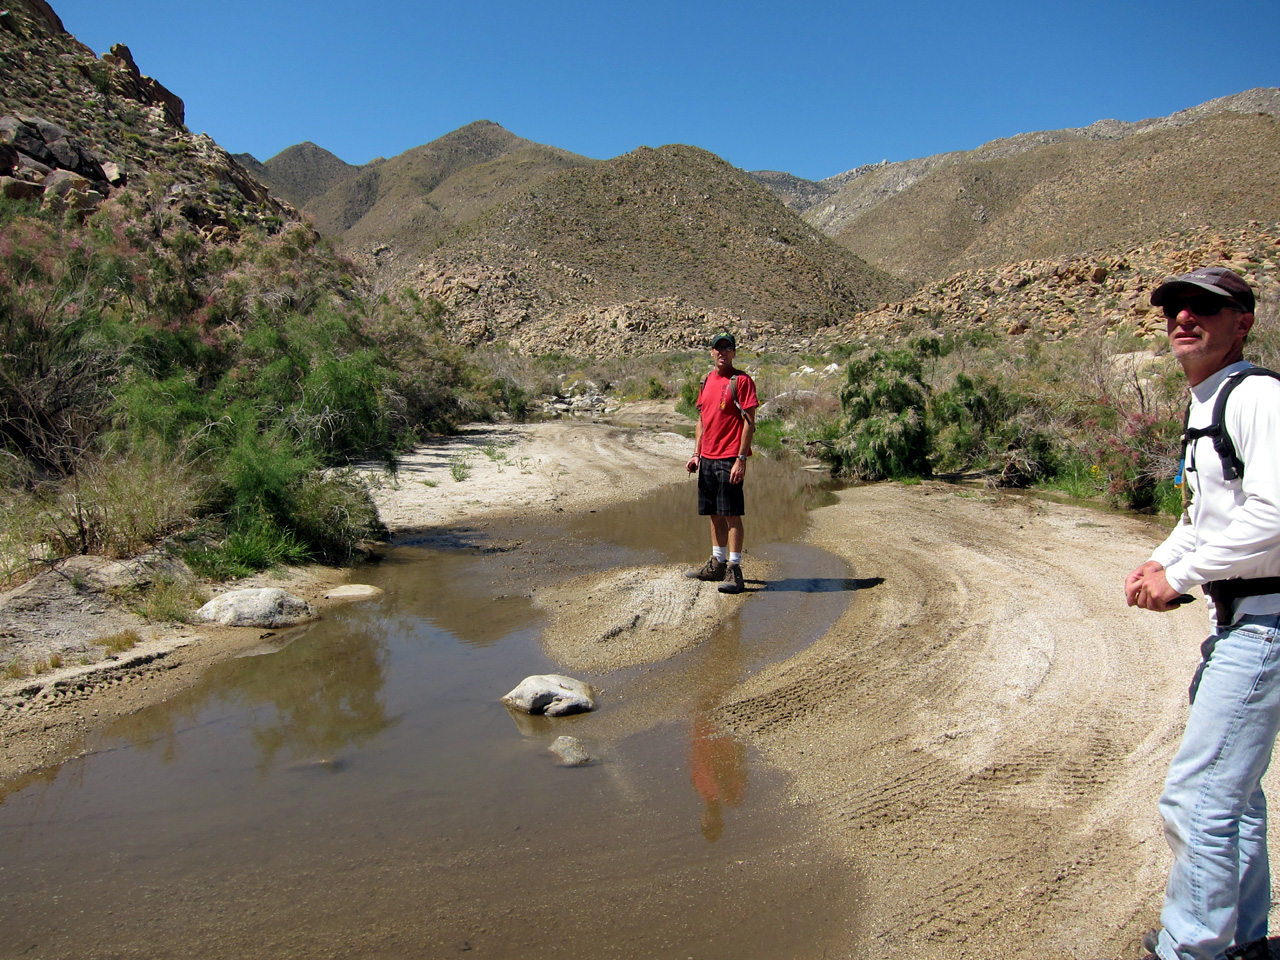 Water was still flowing at the north end of Carrizo Gorge